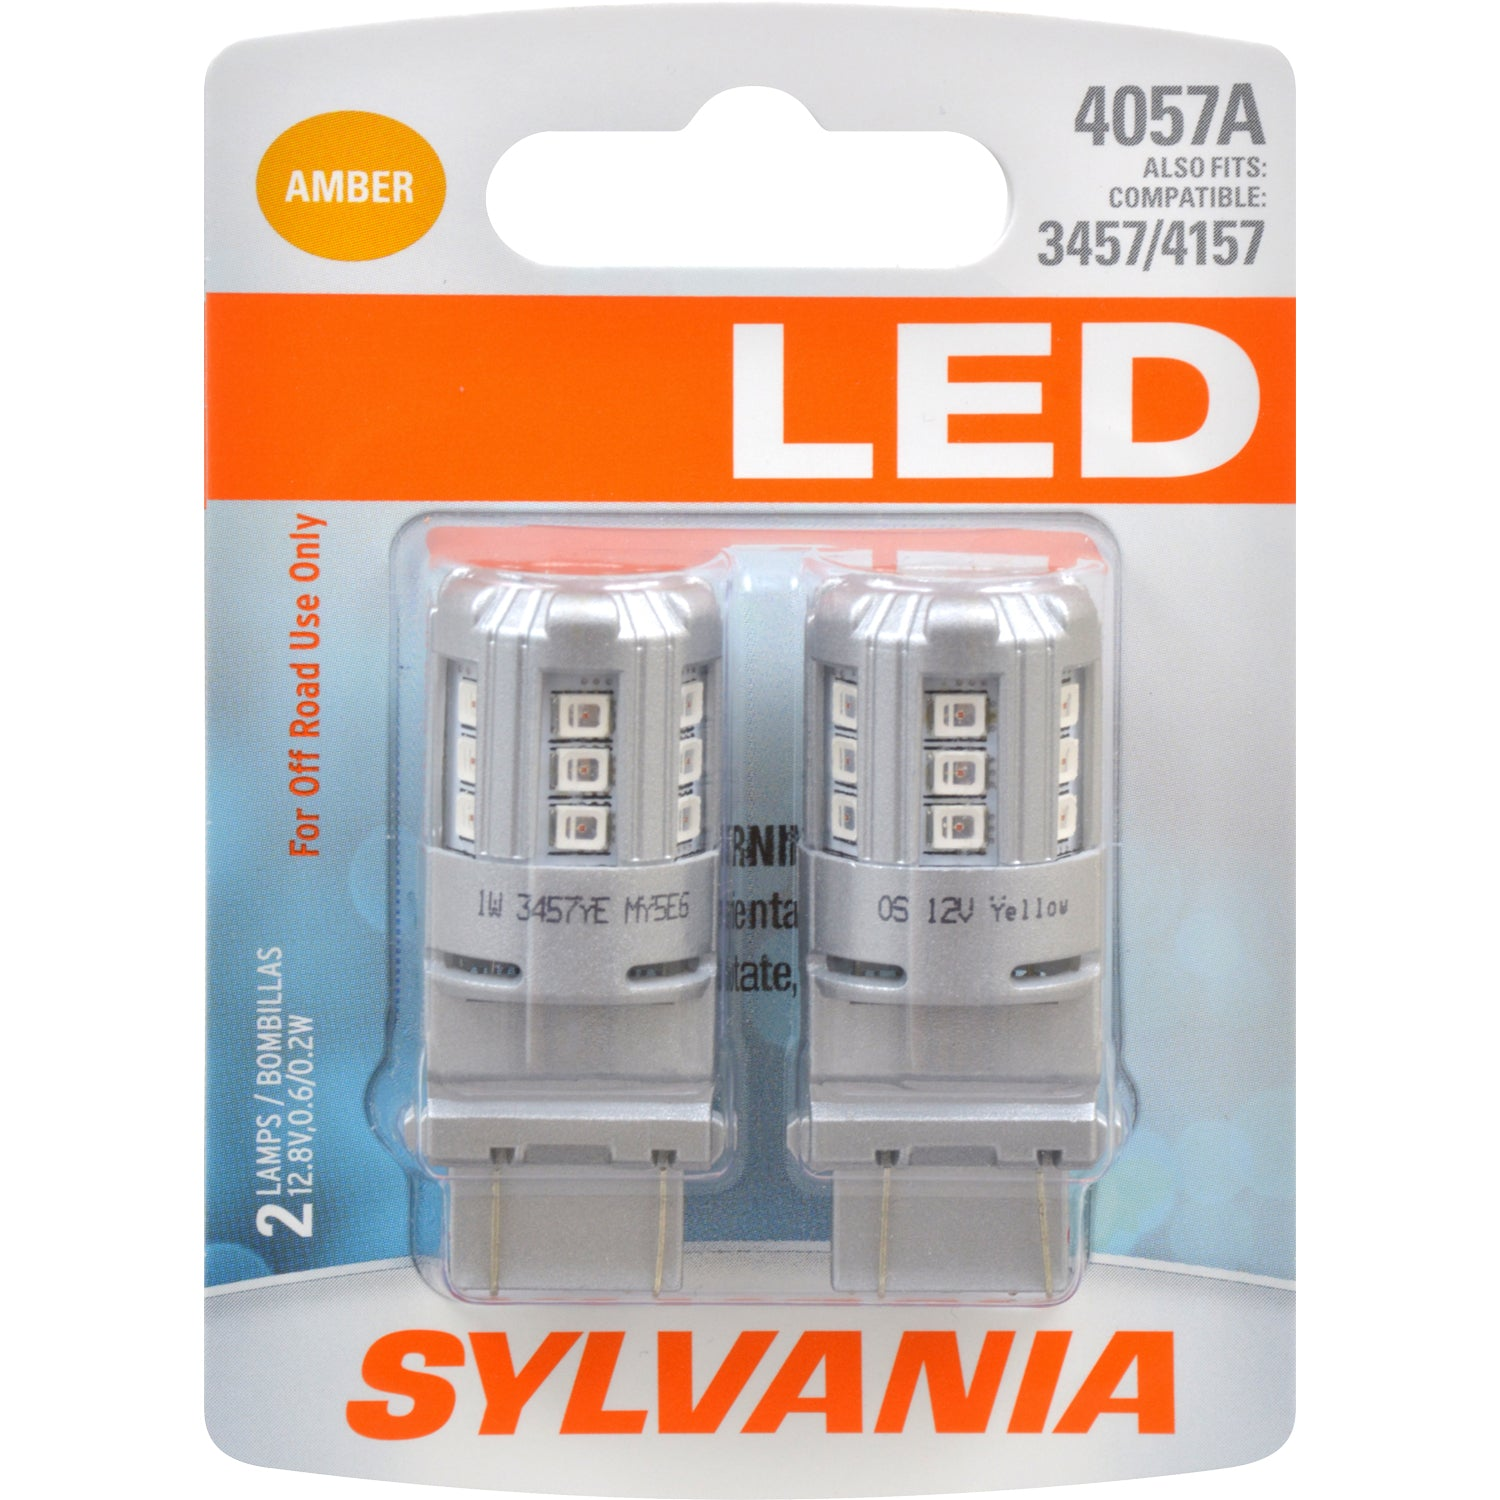 2-PK SYLVANIA 4057 Amber LED Automotive Bulb